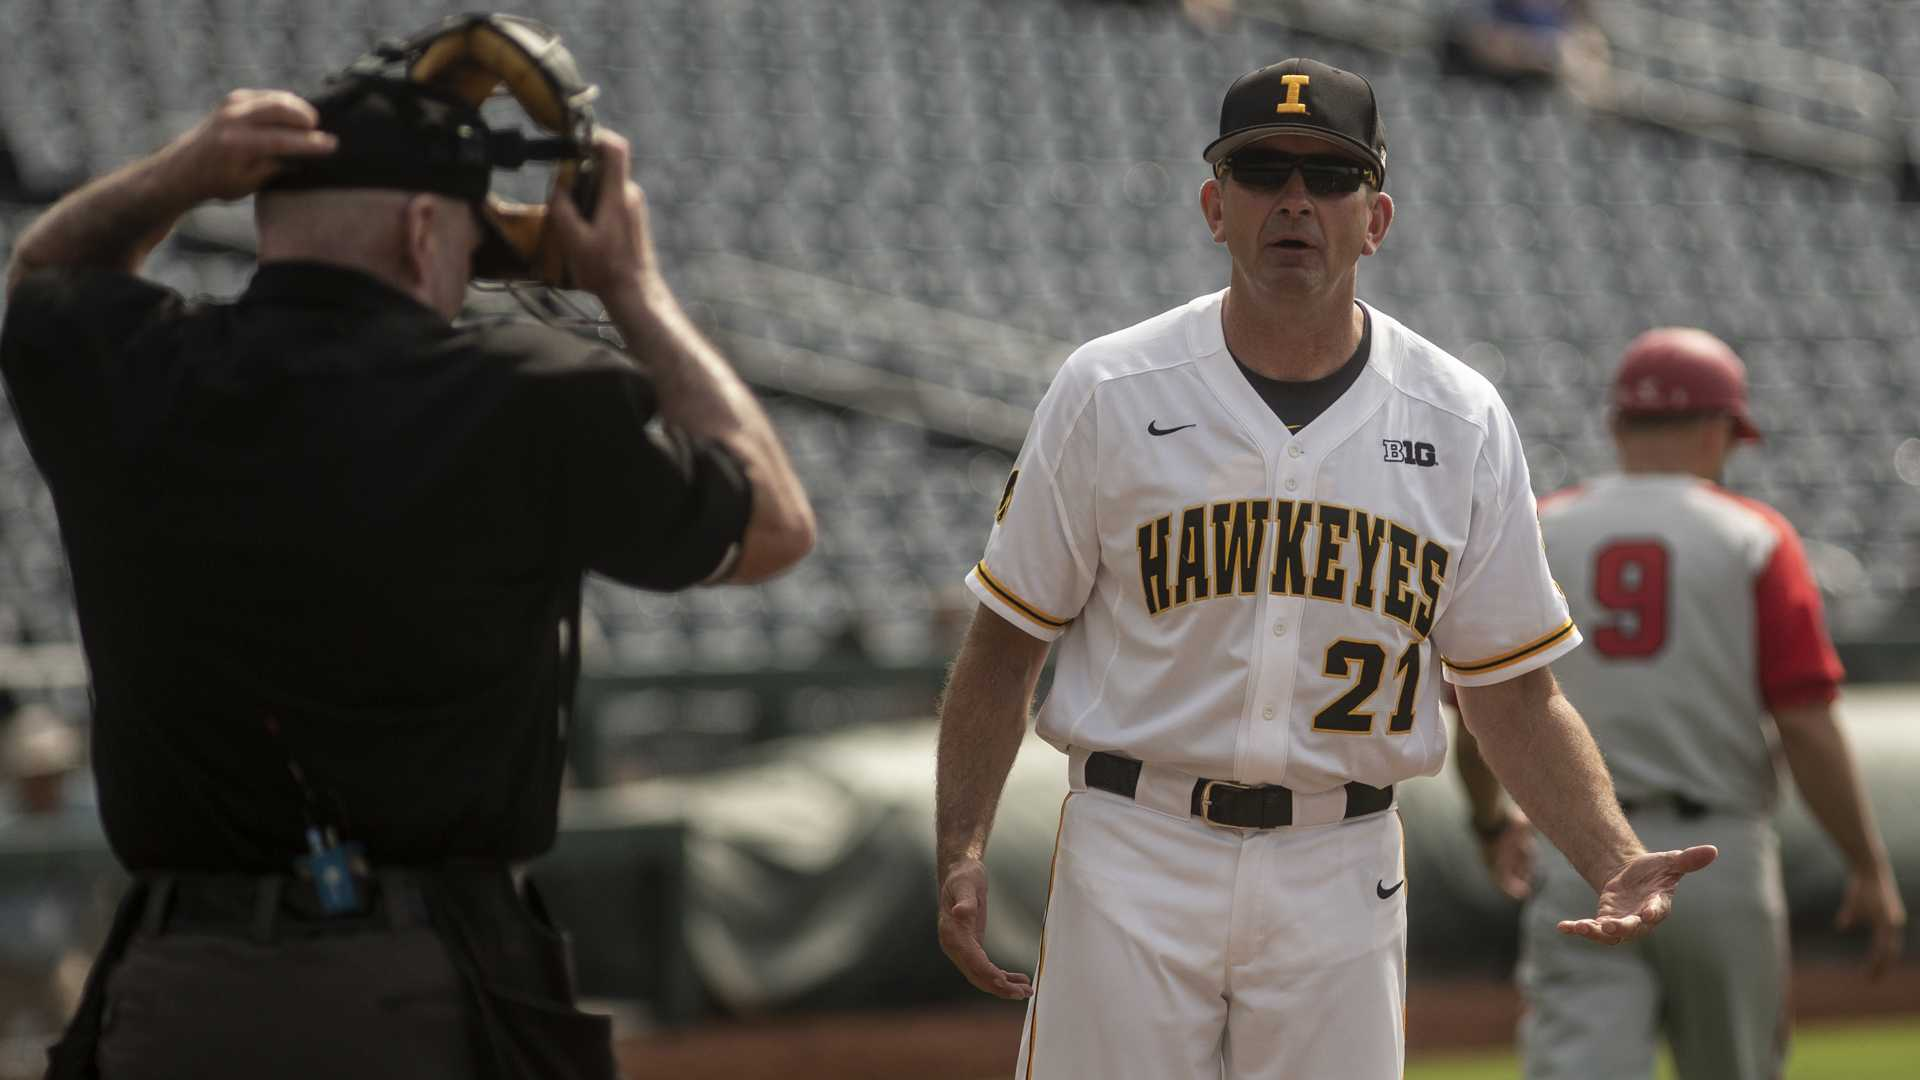 Iowa Head Coach Rick Heller questions the Home Plate Umpire during Iowa's Big Ten tournament game against Ohio State on Thursday, May 24, 2018. The Buckeyes defeated the Hawkeyes 2-0.